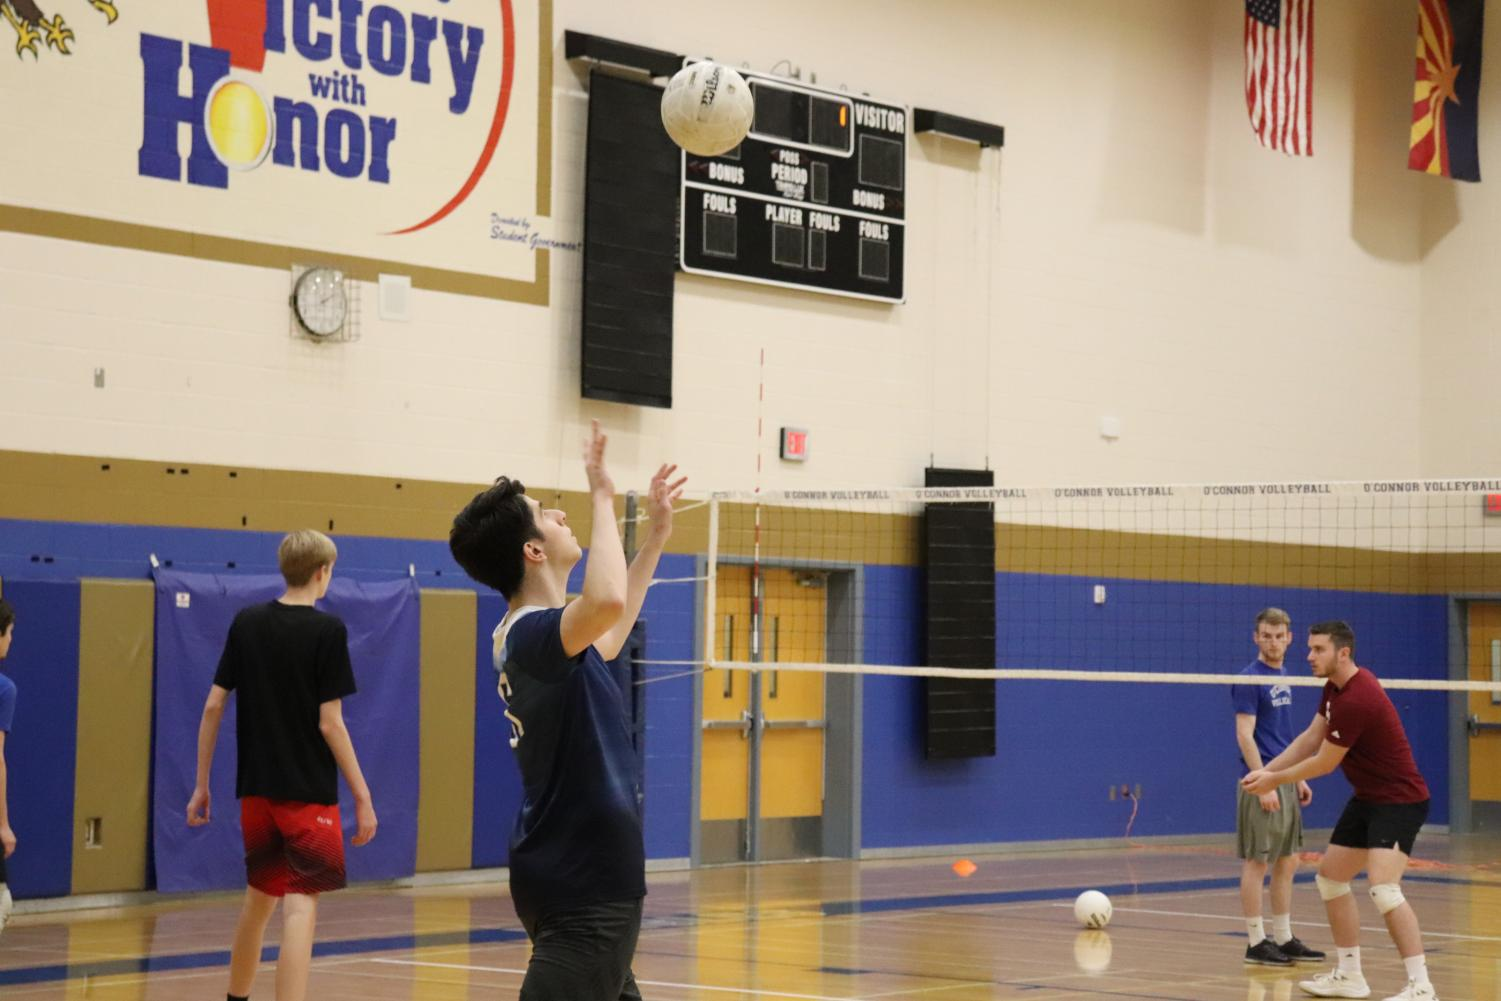 Diego Guillen. senior, looks to serve the ball at practice on February 27th.